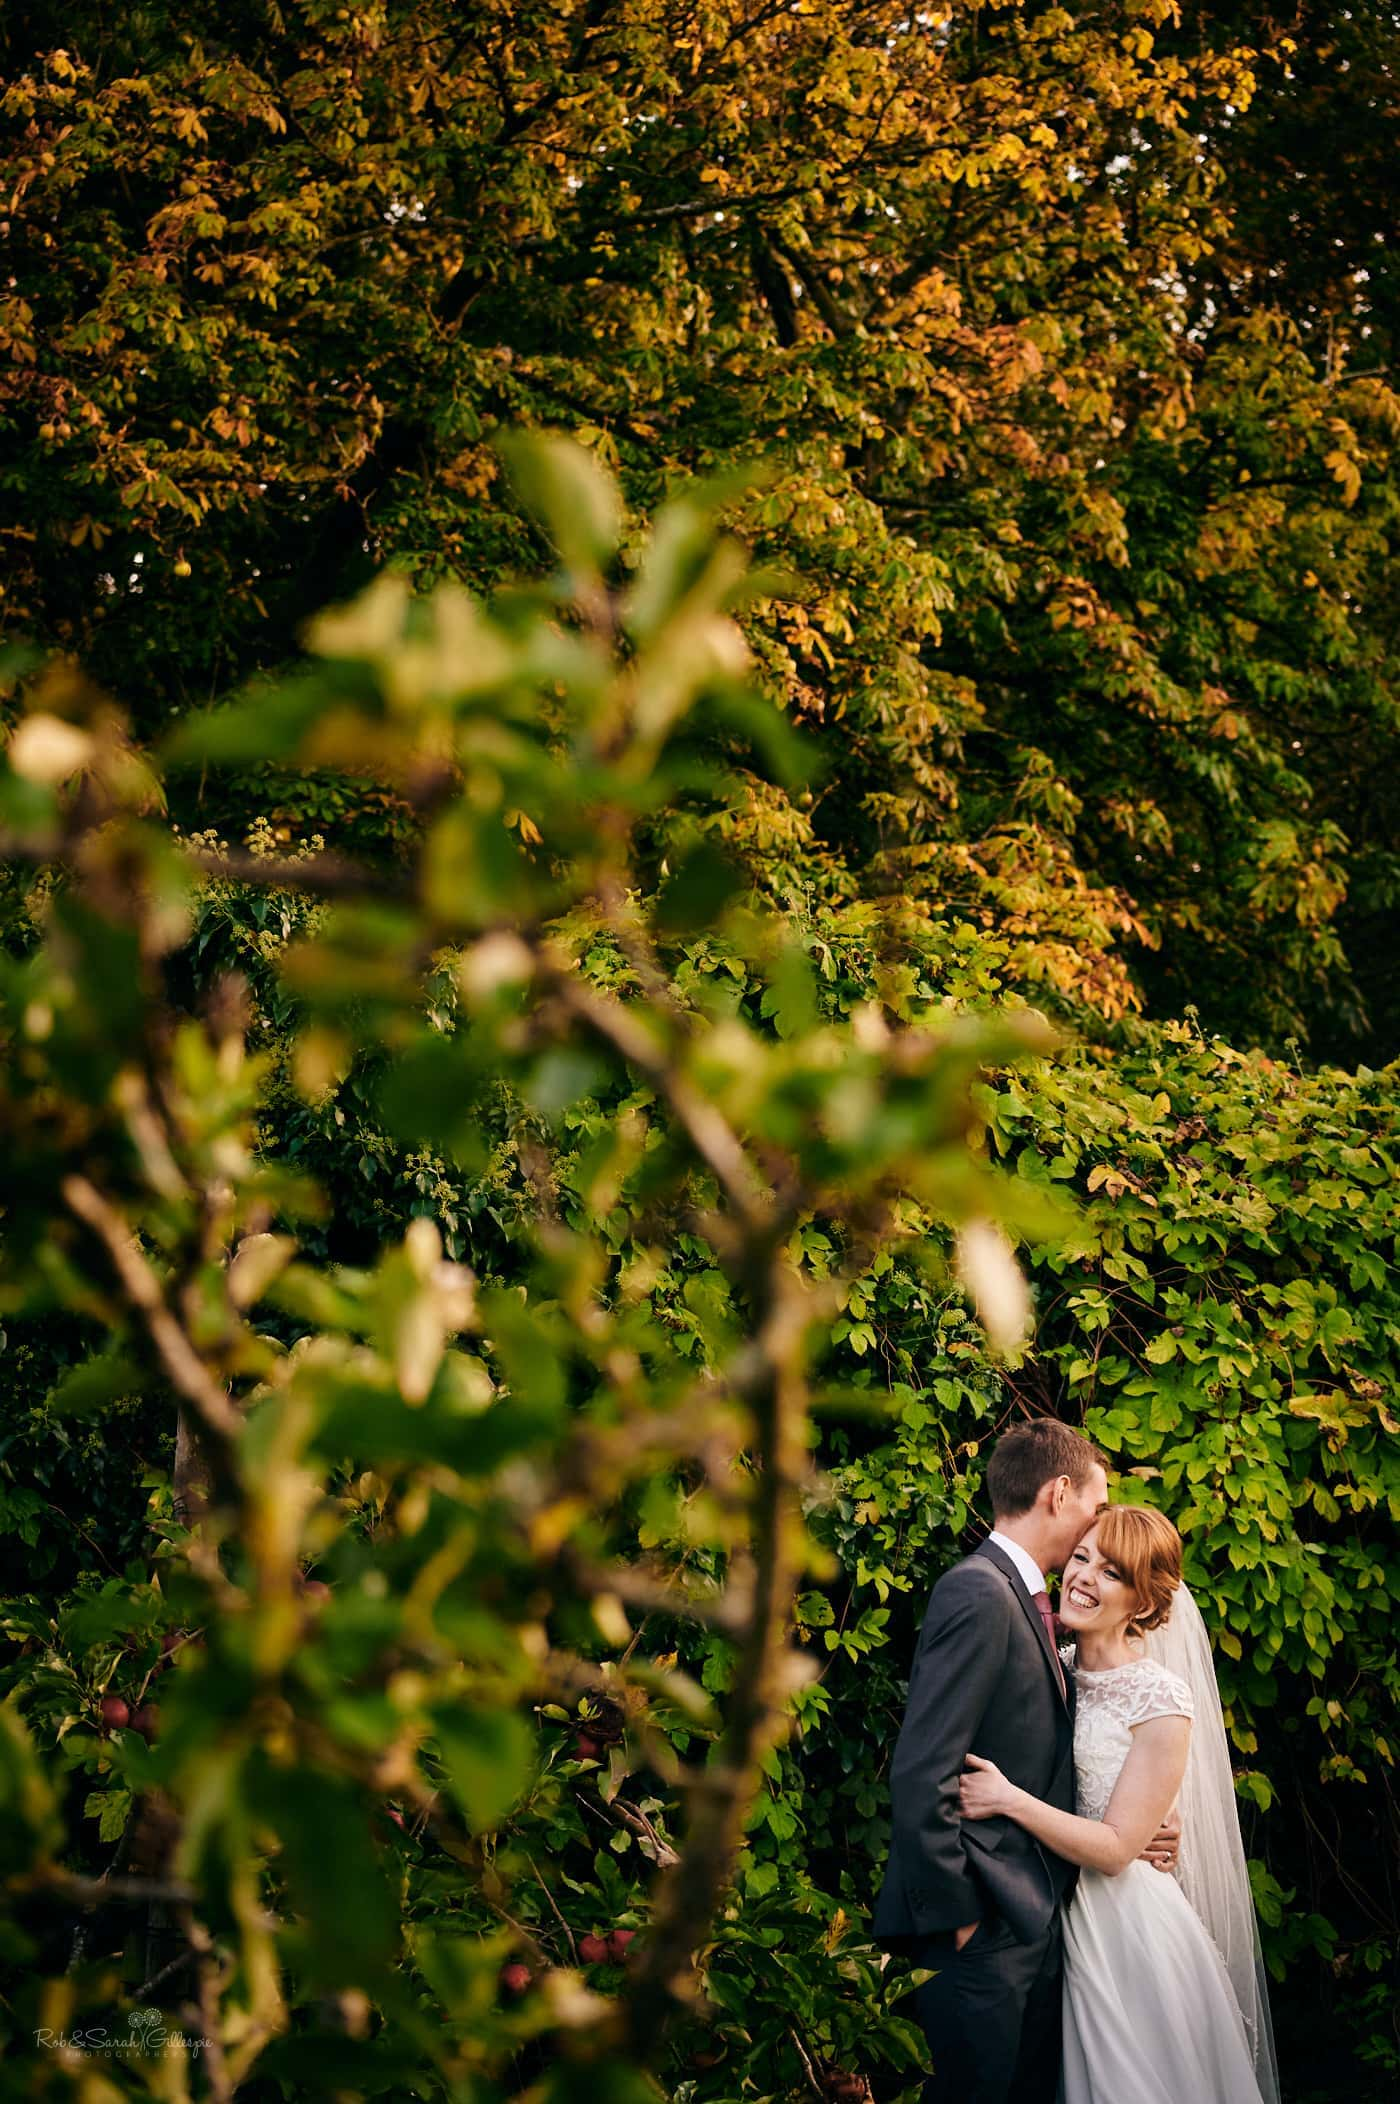 Bride and groom relaxing together in gardens with beautiful evening light